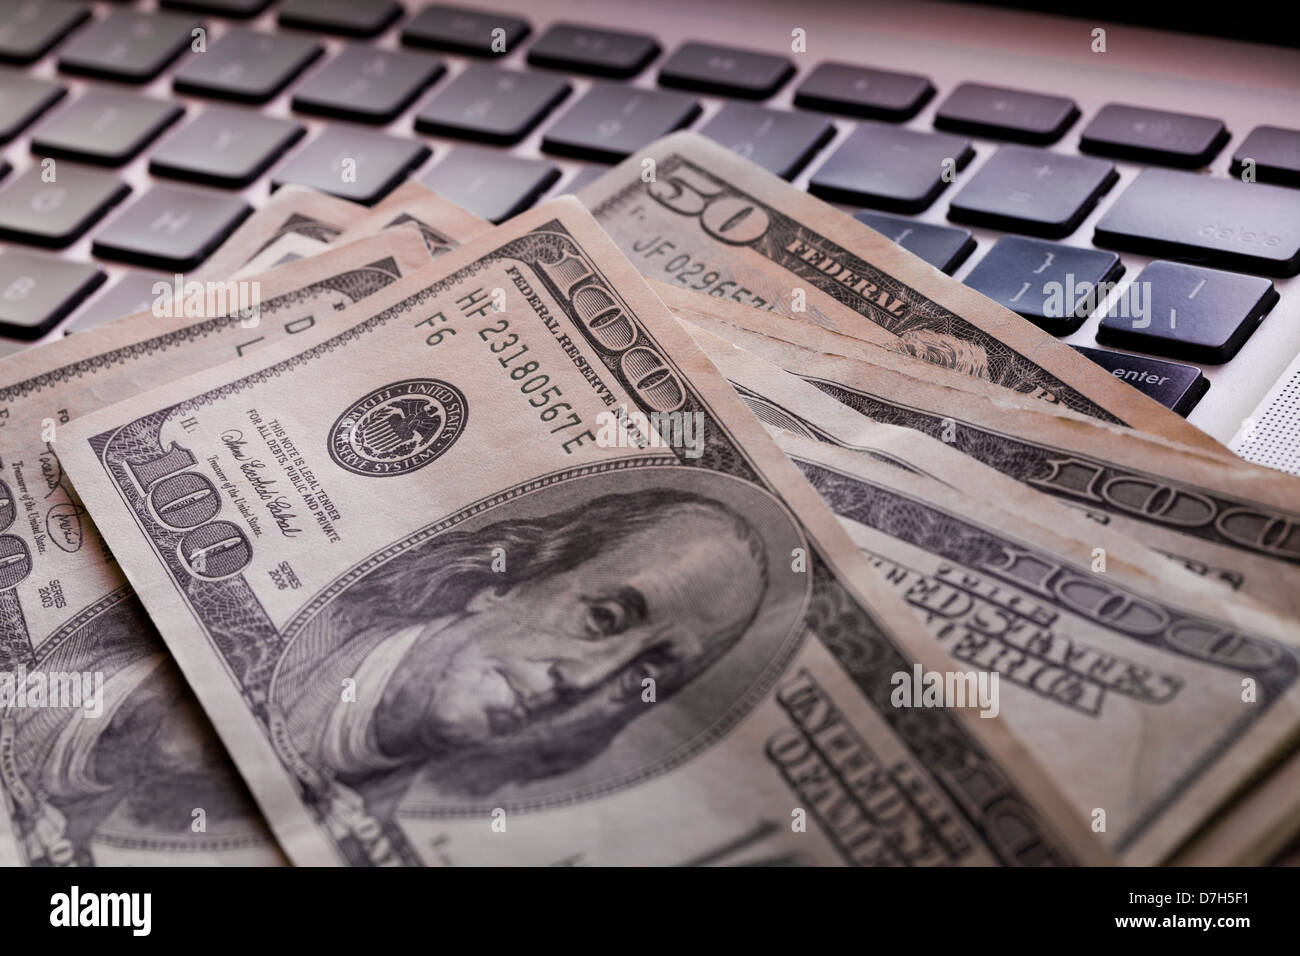 Money on computer keyboard - Stock Image